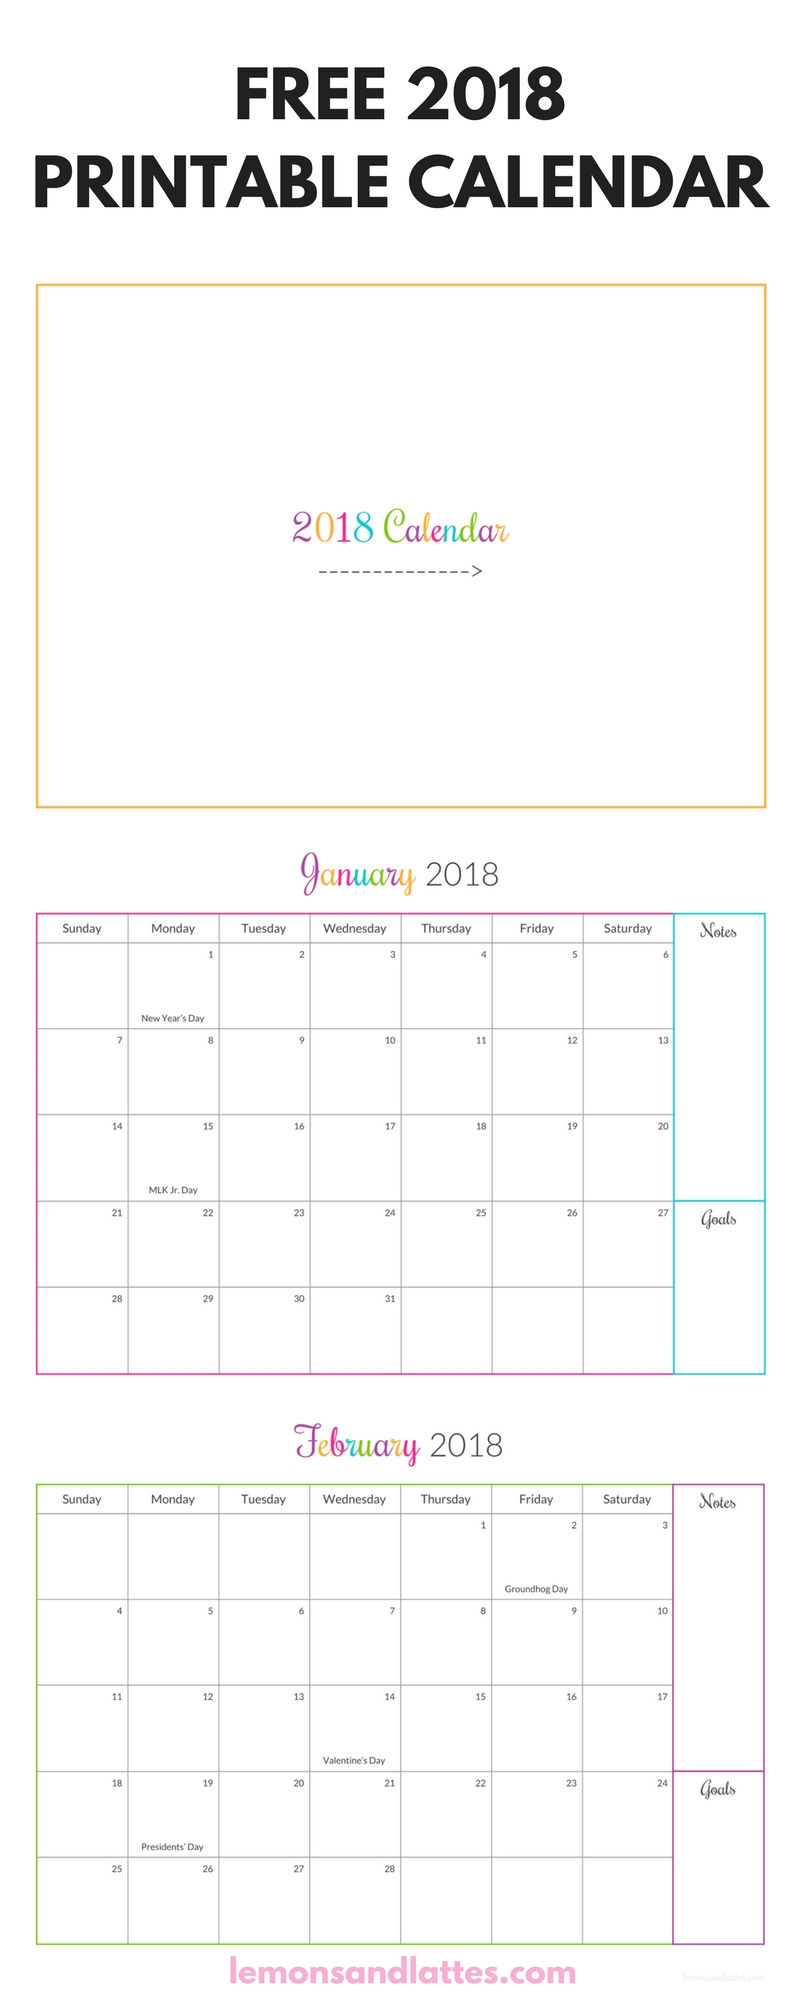 Free 2018 Printable Calendar With Holidays, Notes, And Goals + Cover Sheet | 2018 Printable